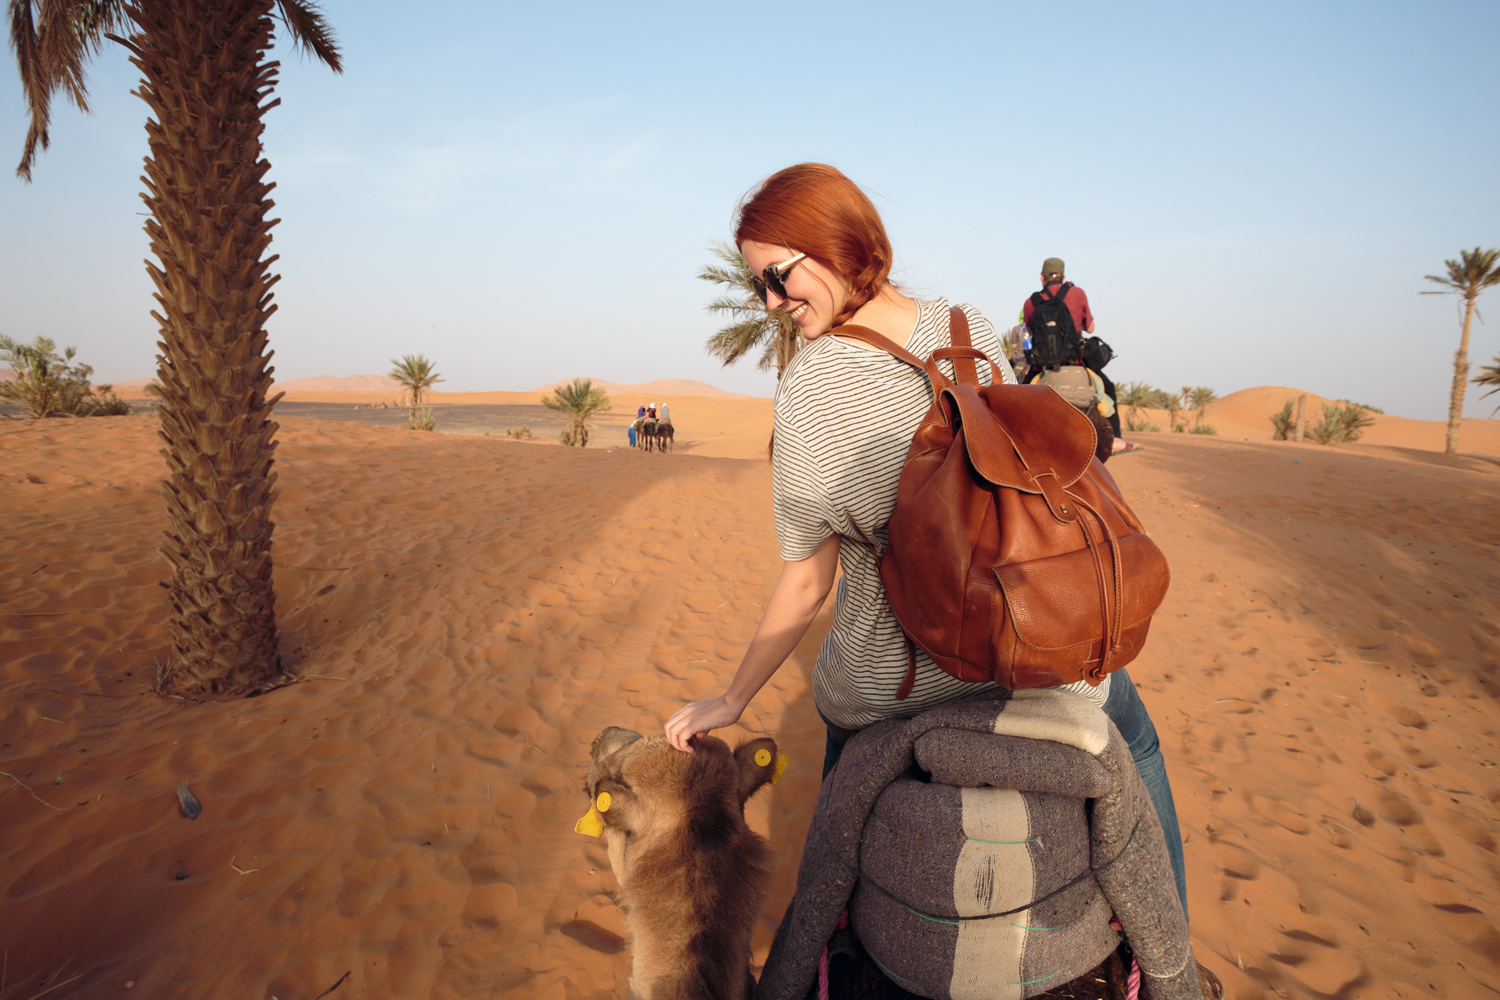 Shannon on Shirley the camel, in Merzouga, riding out onto Erg Chebbi